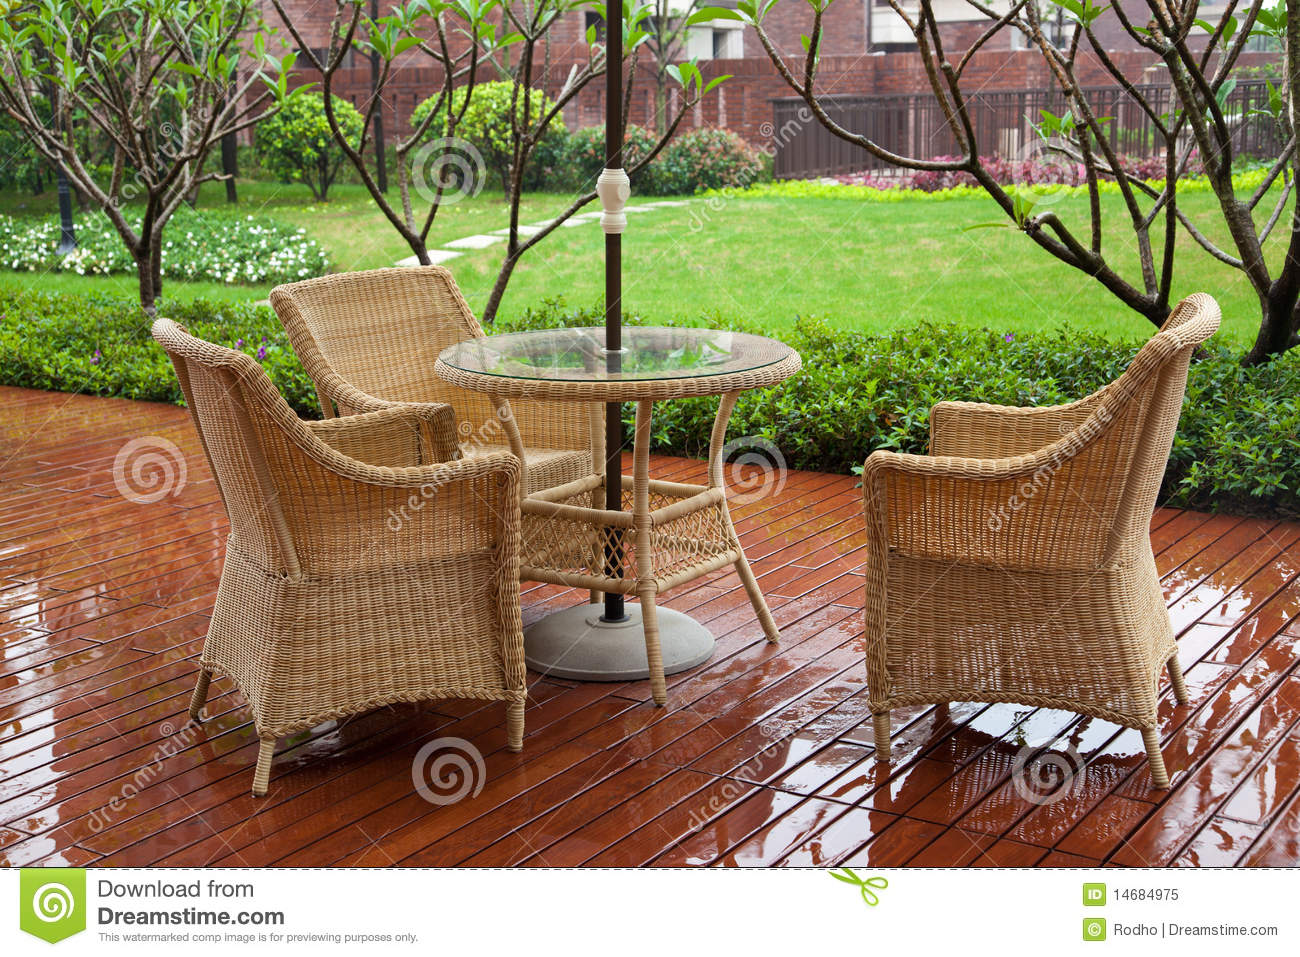 Backyard Chairs Patio Chairs Stock Image Image Of Floor Exteriors Furniture